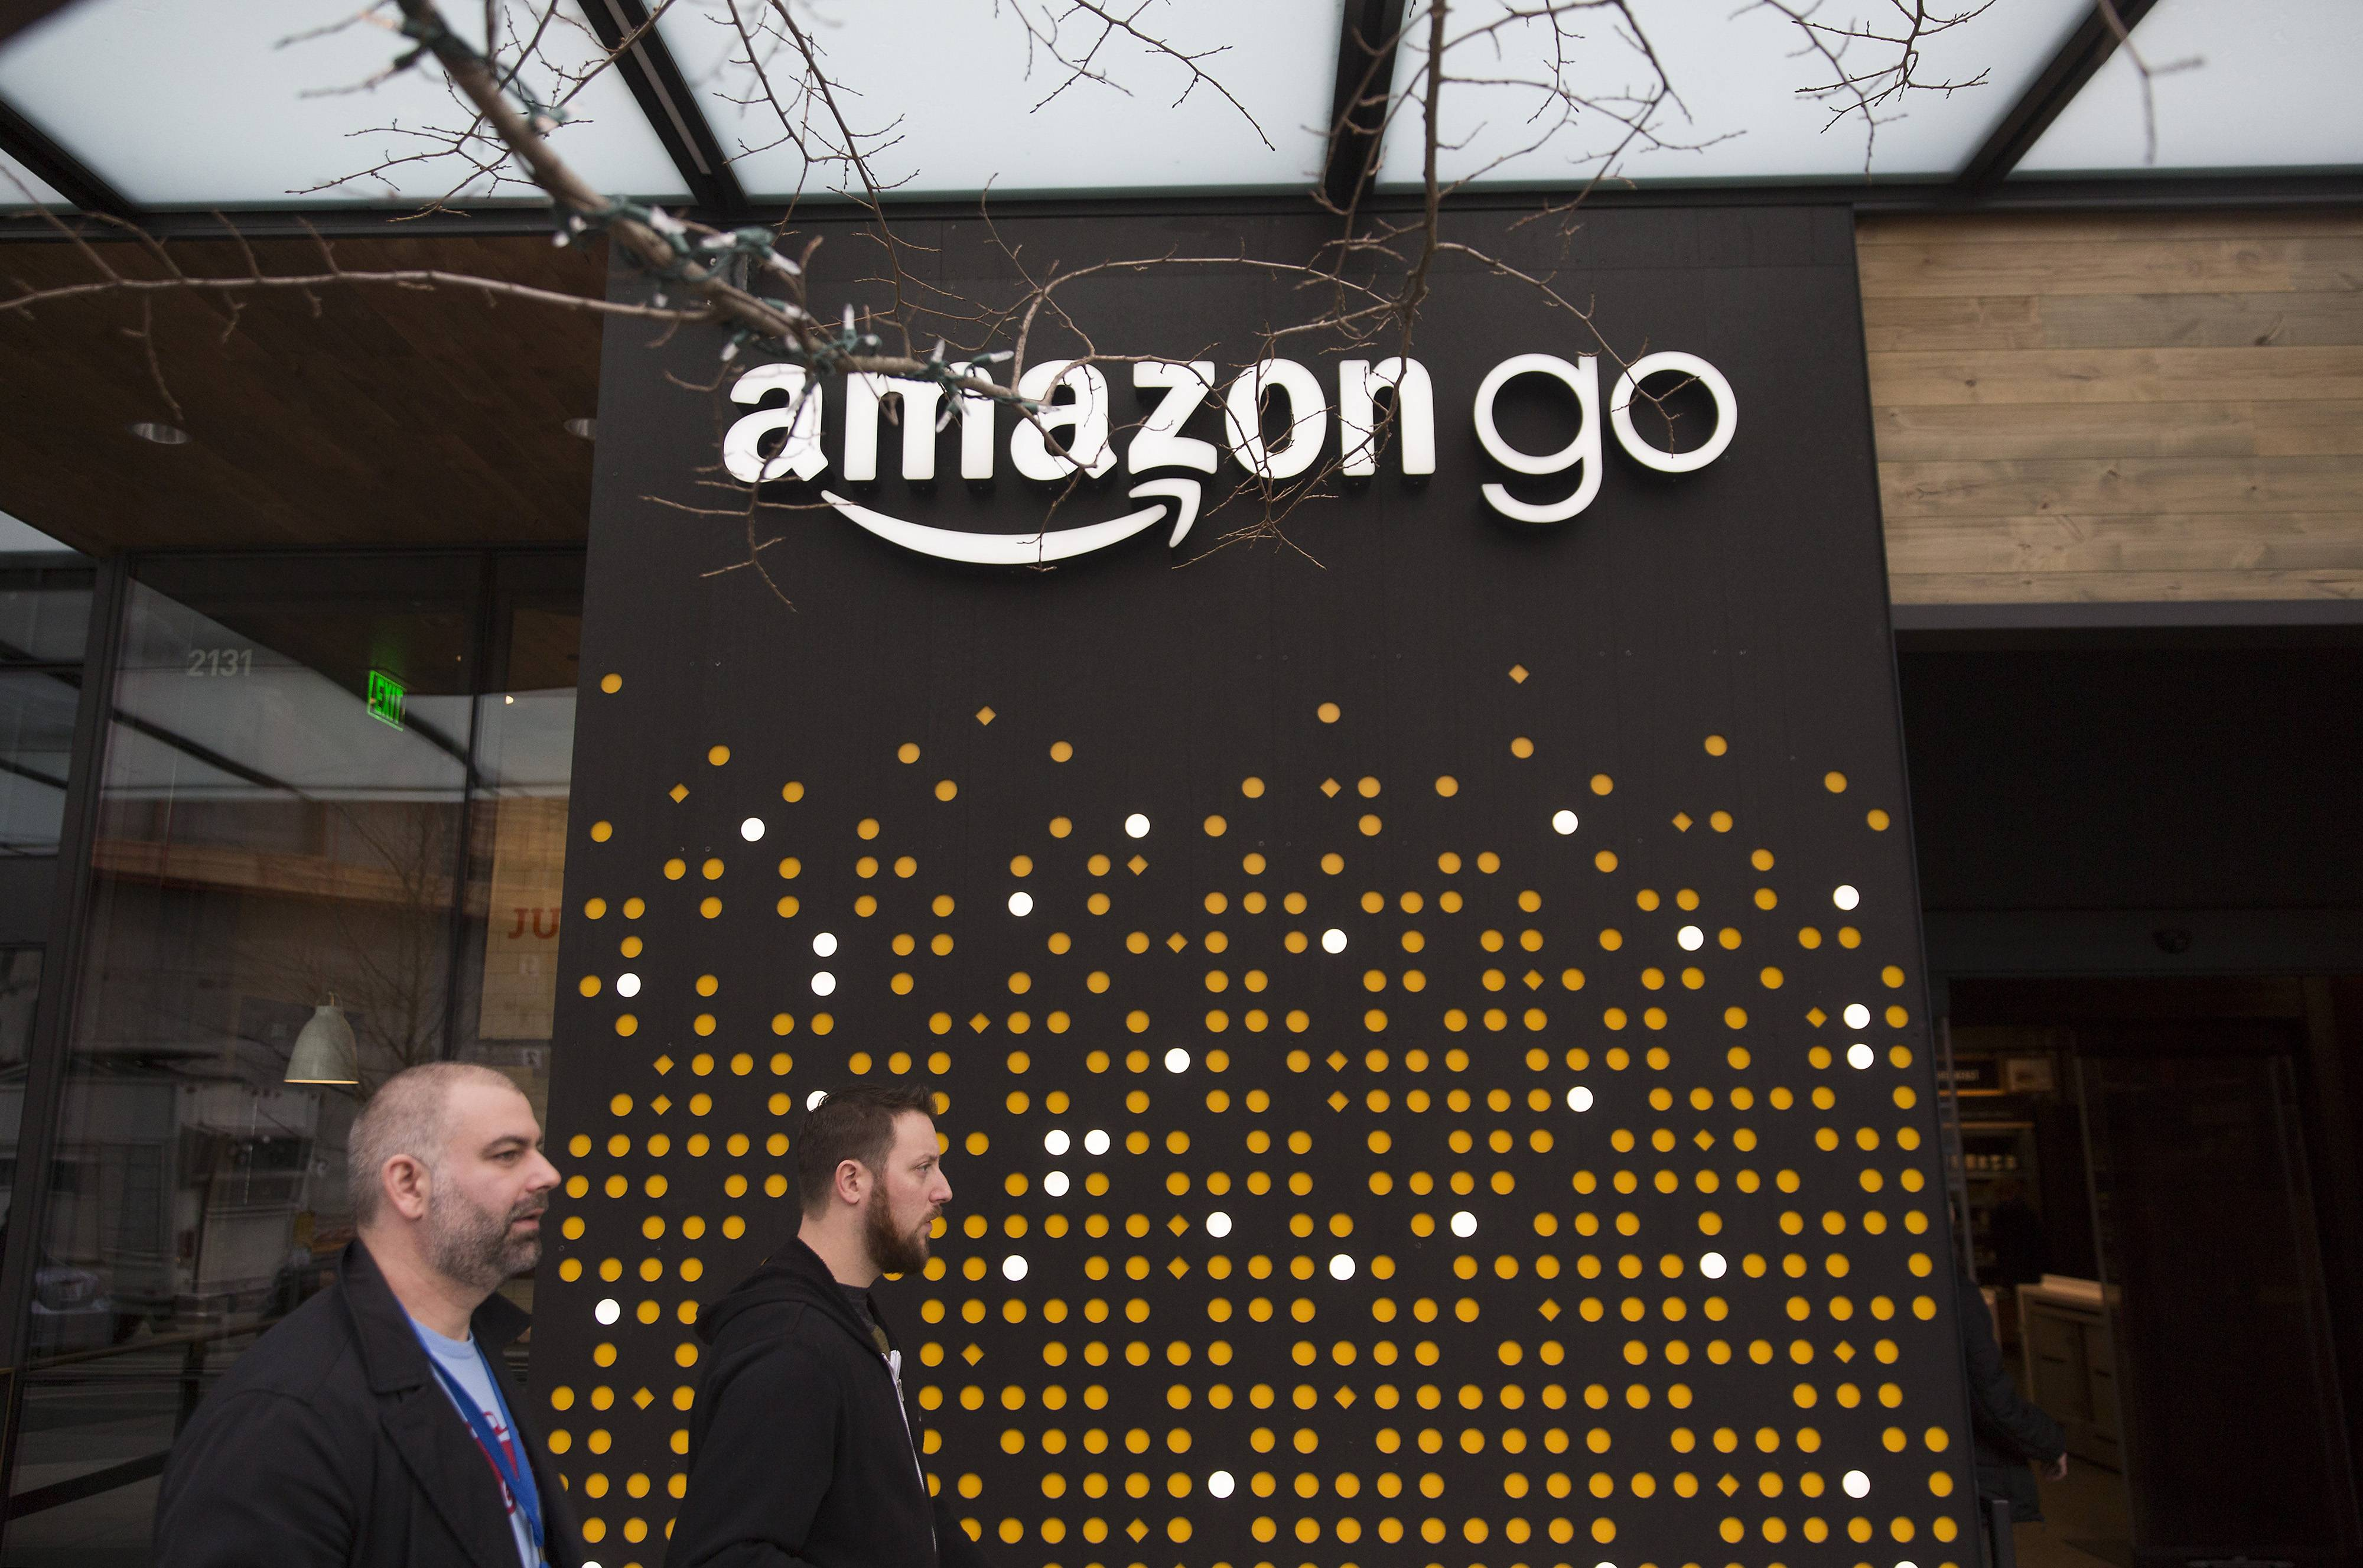 Pedestrians walk past the Amazon Go store in Seattle on Jan. 17, 2018.